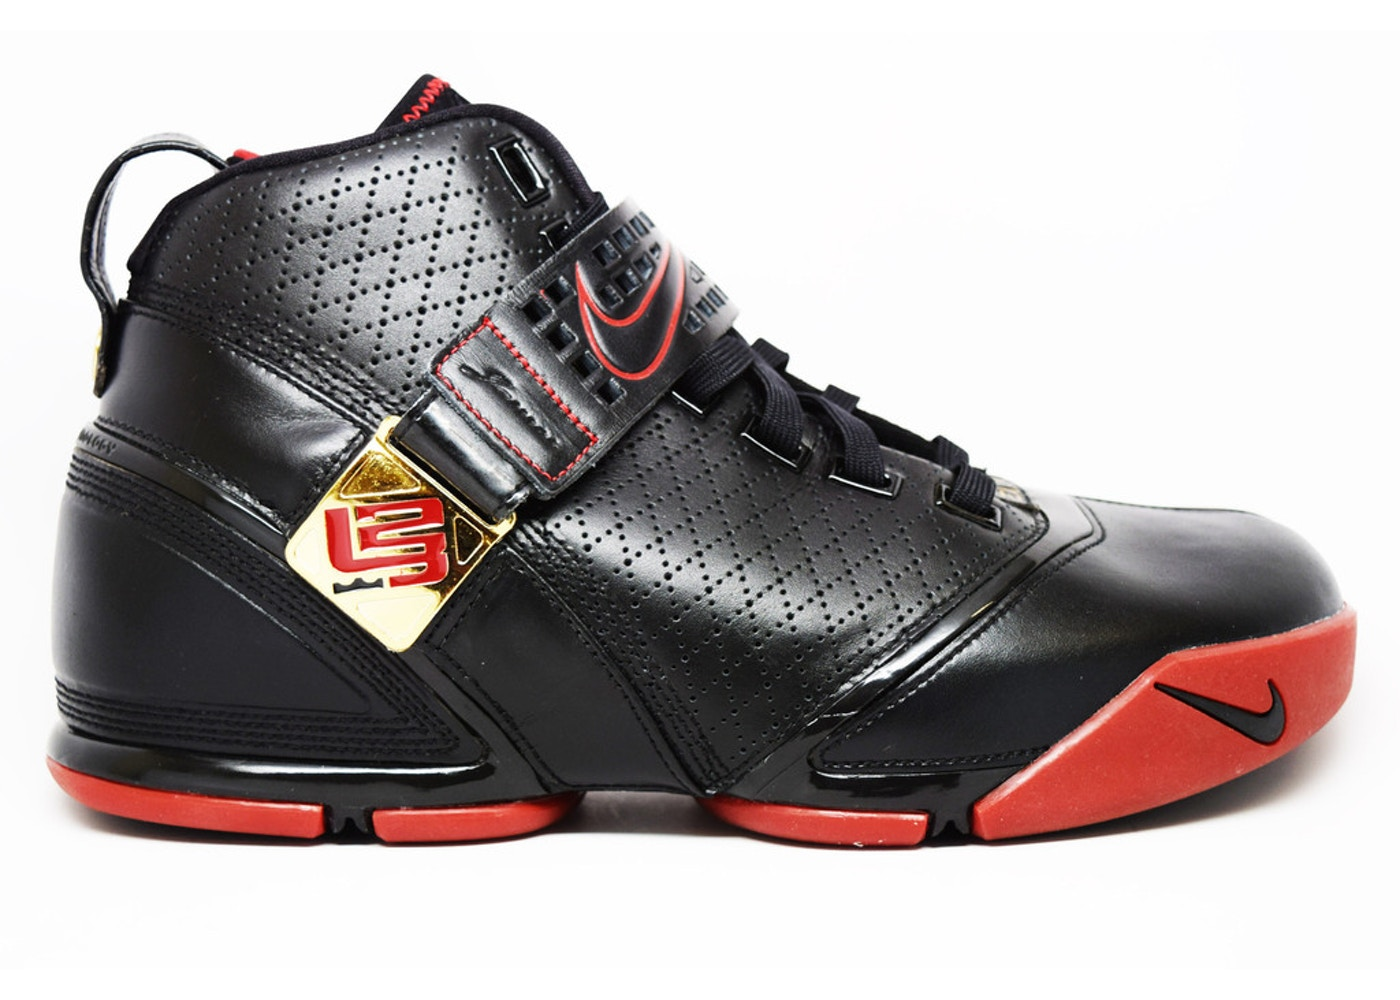 finest selection aa0ff 0c20c Buy Nike LeBron 5 Shoes & Deadstock Sneakers